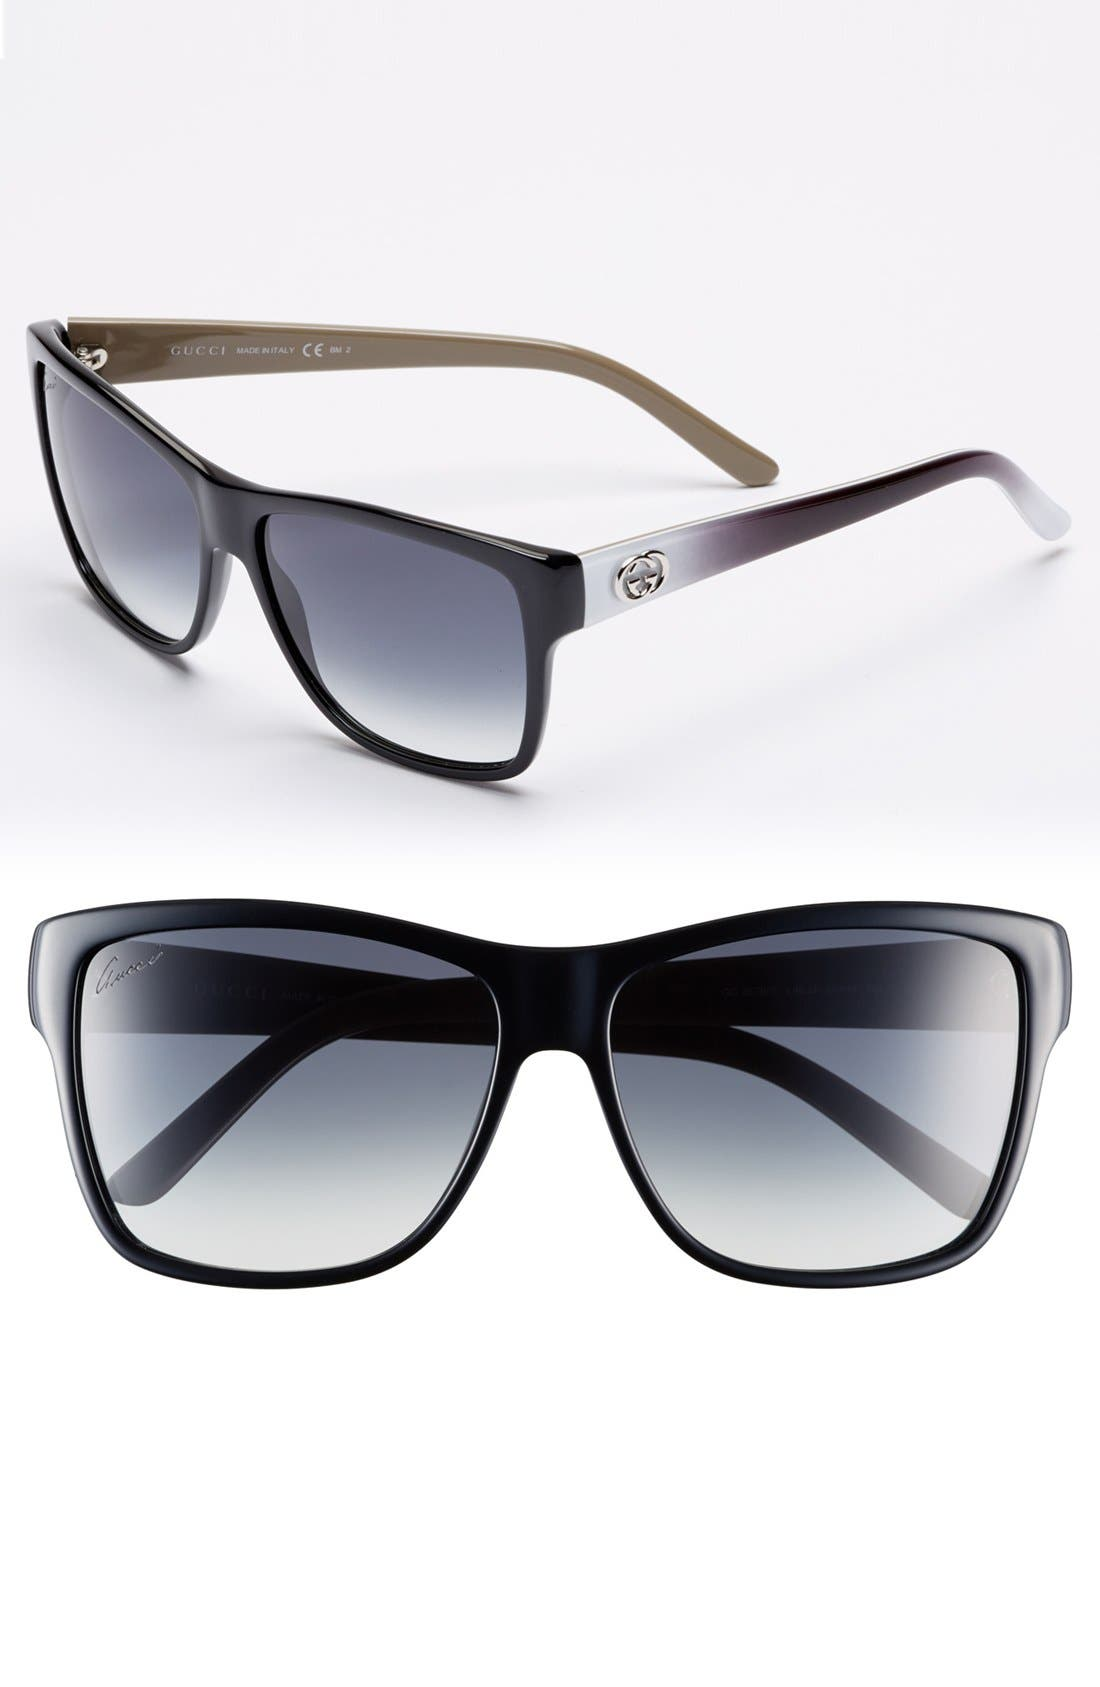 Alternate Image 1 Selected - Gucci 58mm Retro Sunglasses